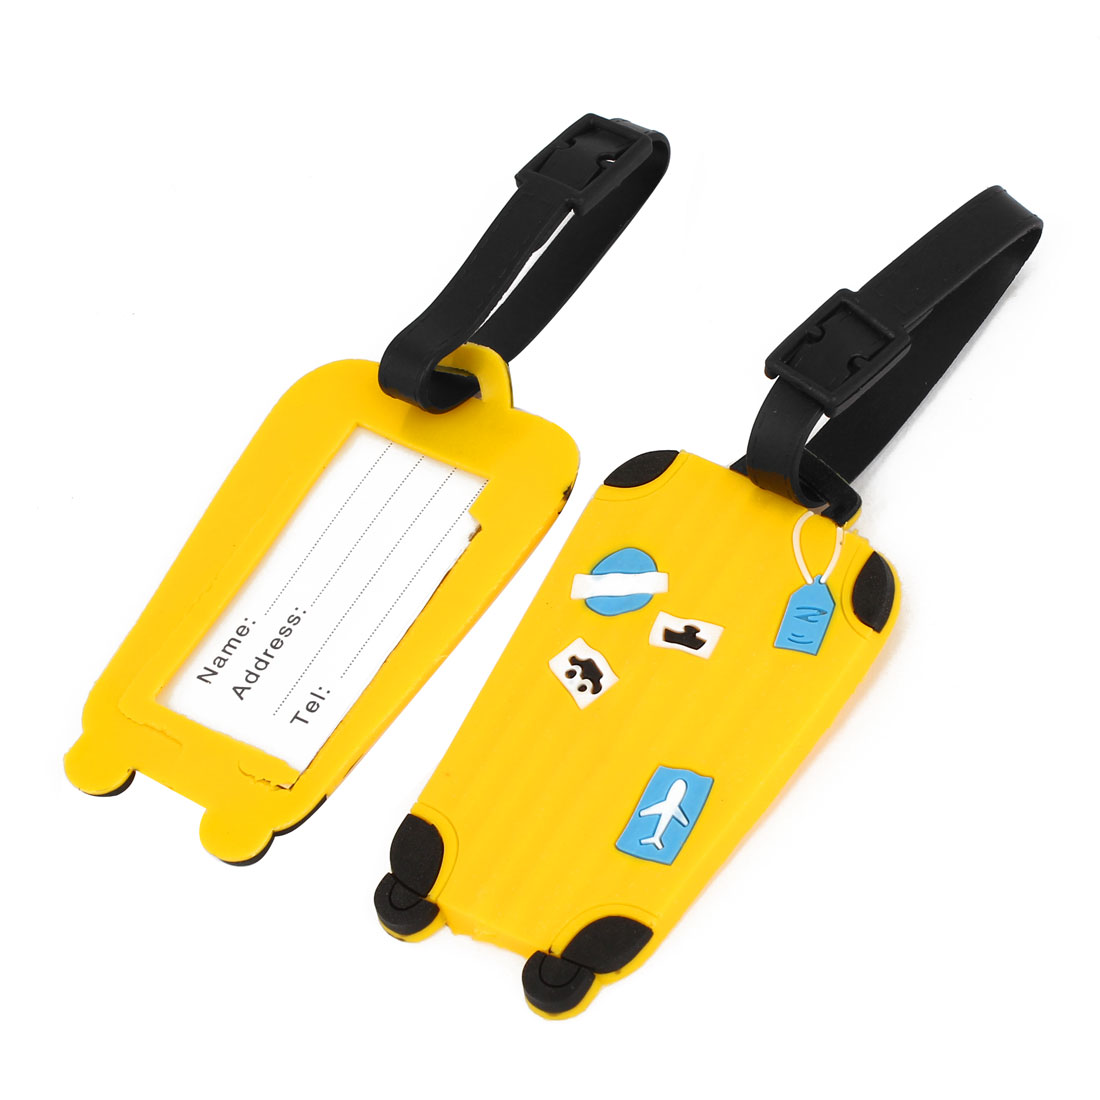 Plane Car Boat Pattern Travel Suitcase Baggage Luggage ID Tag Yellow 2Pcs